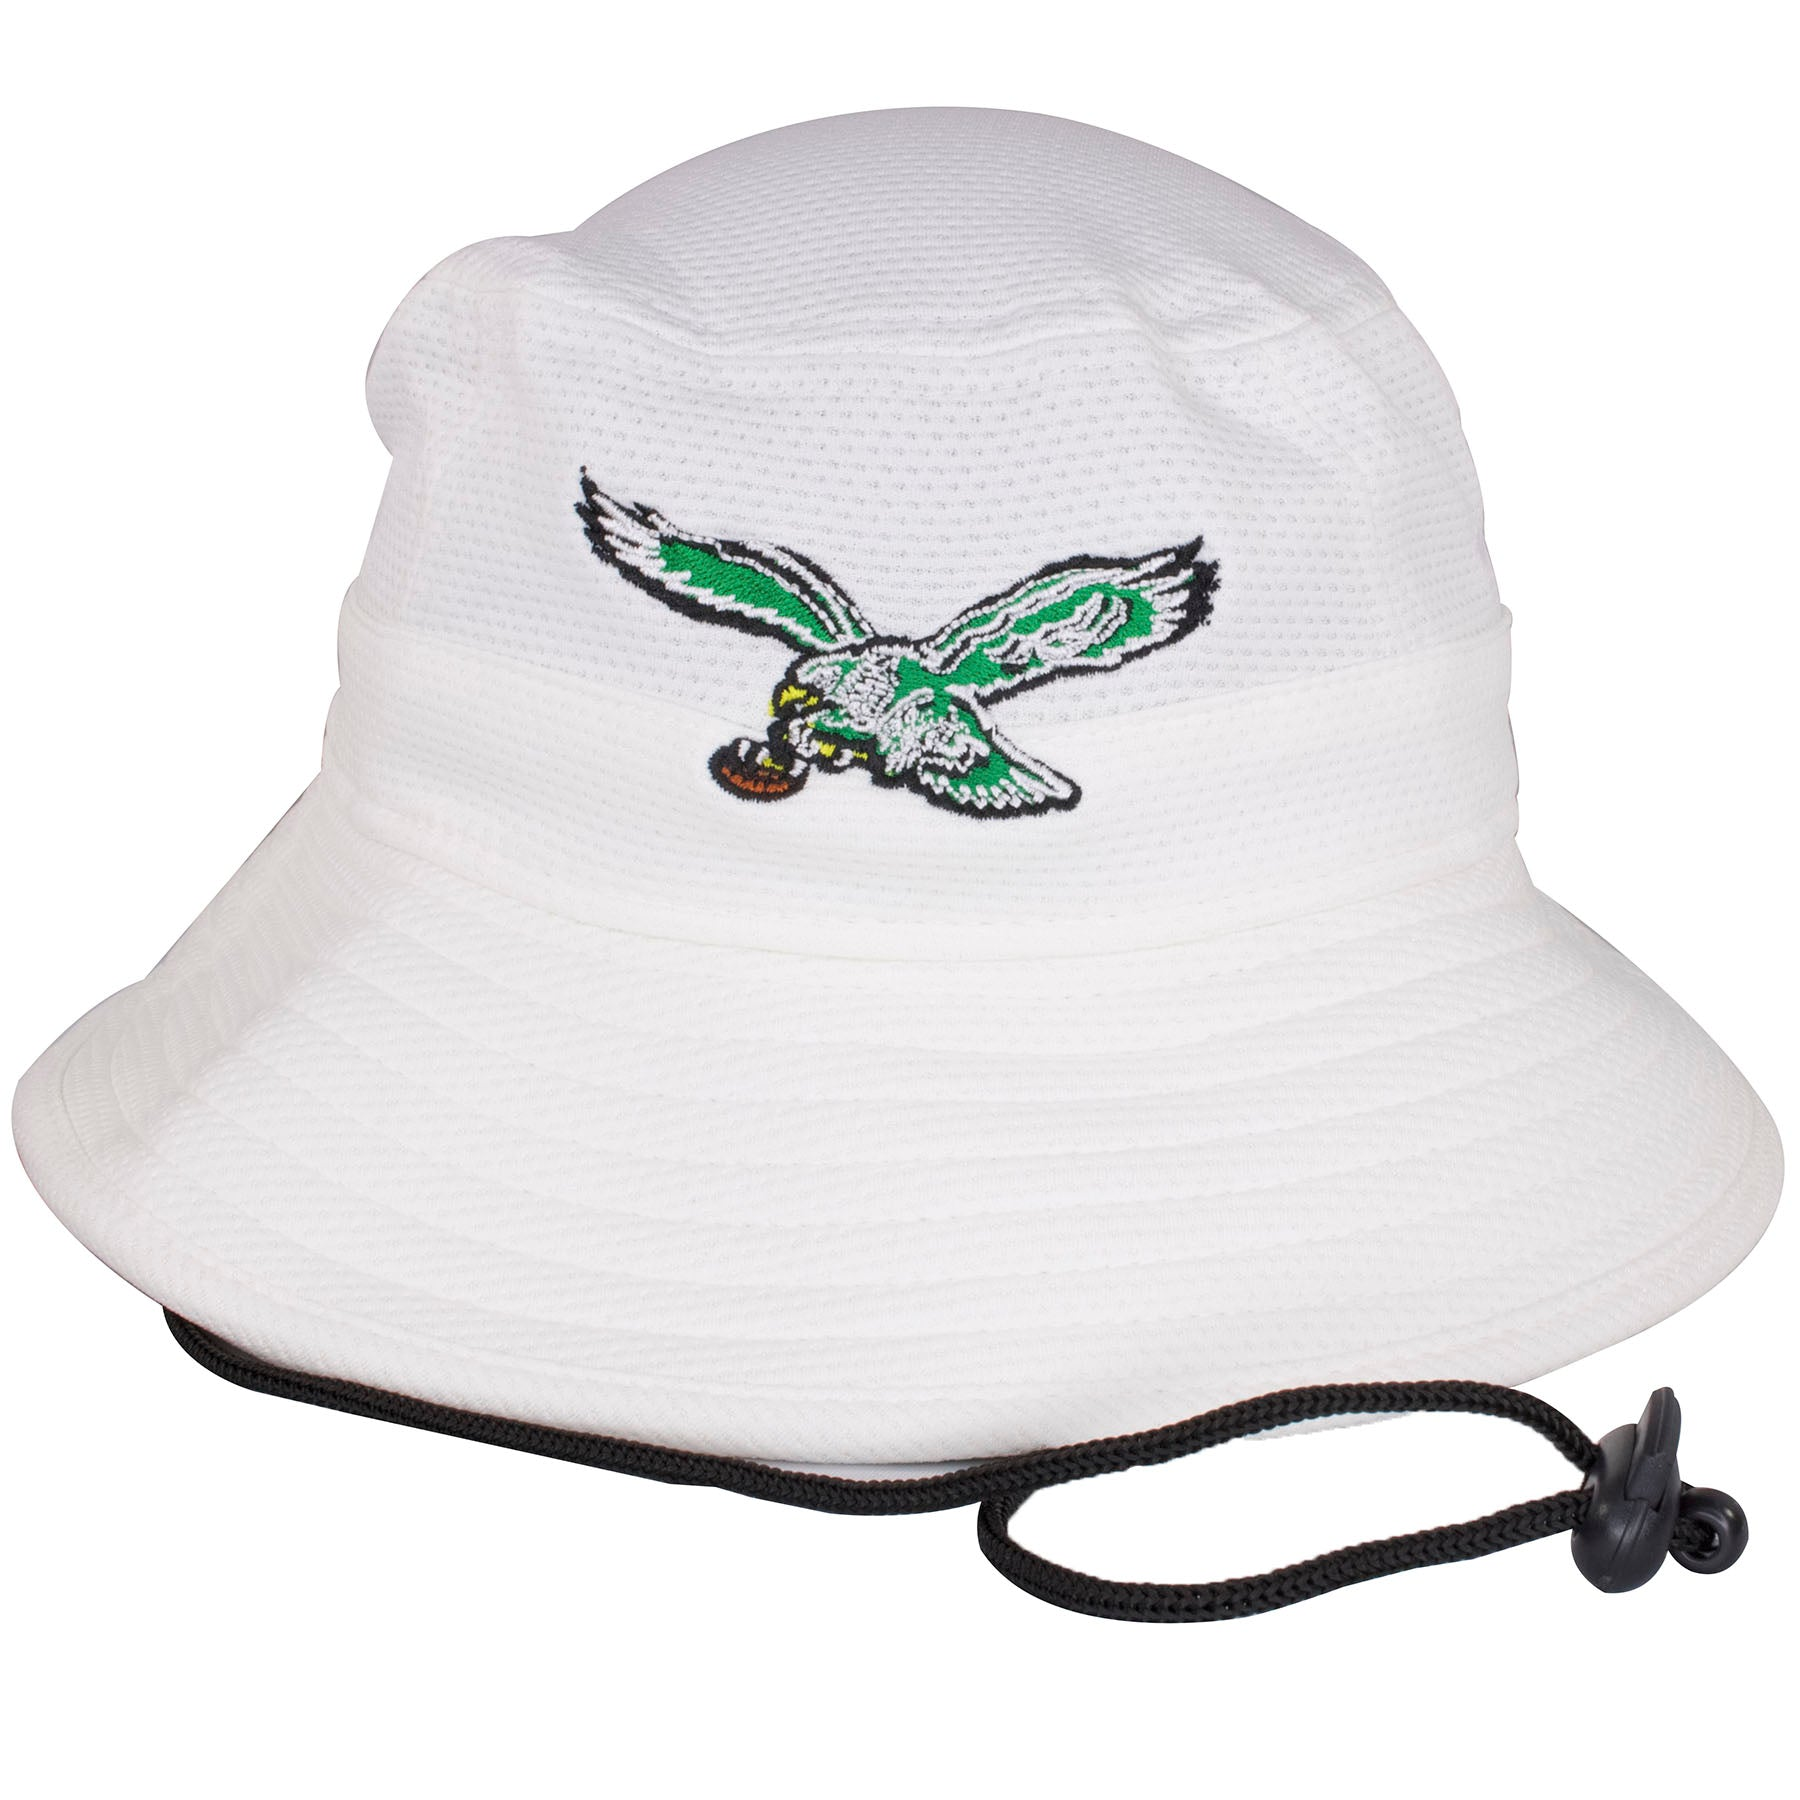 The vintage Philadelphia Eagles bird logo is embroidered on the front of  this Philadelphia Eagles white 55bd8d56d